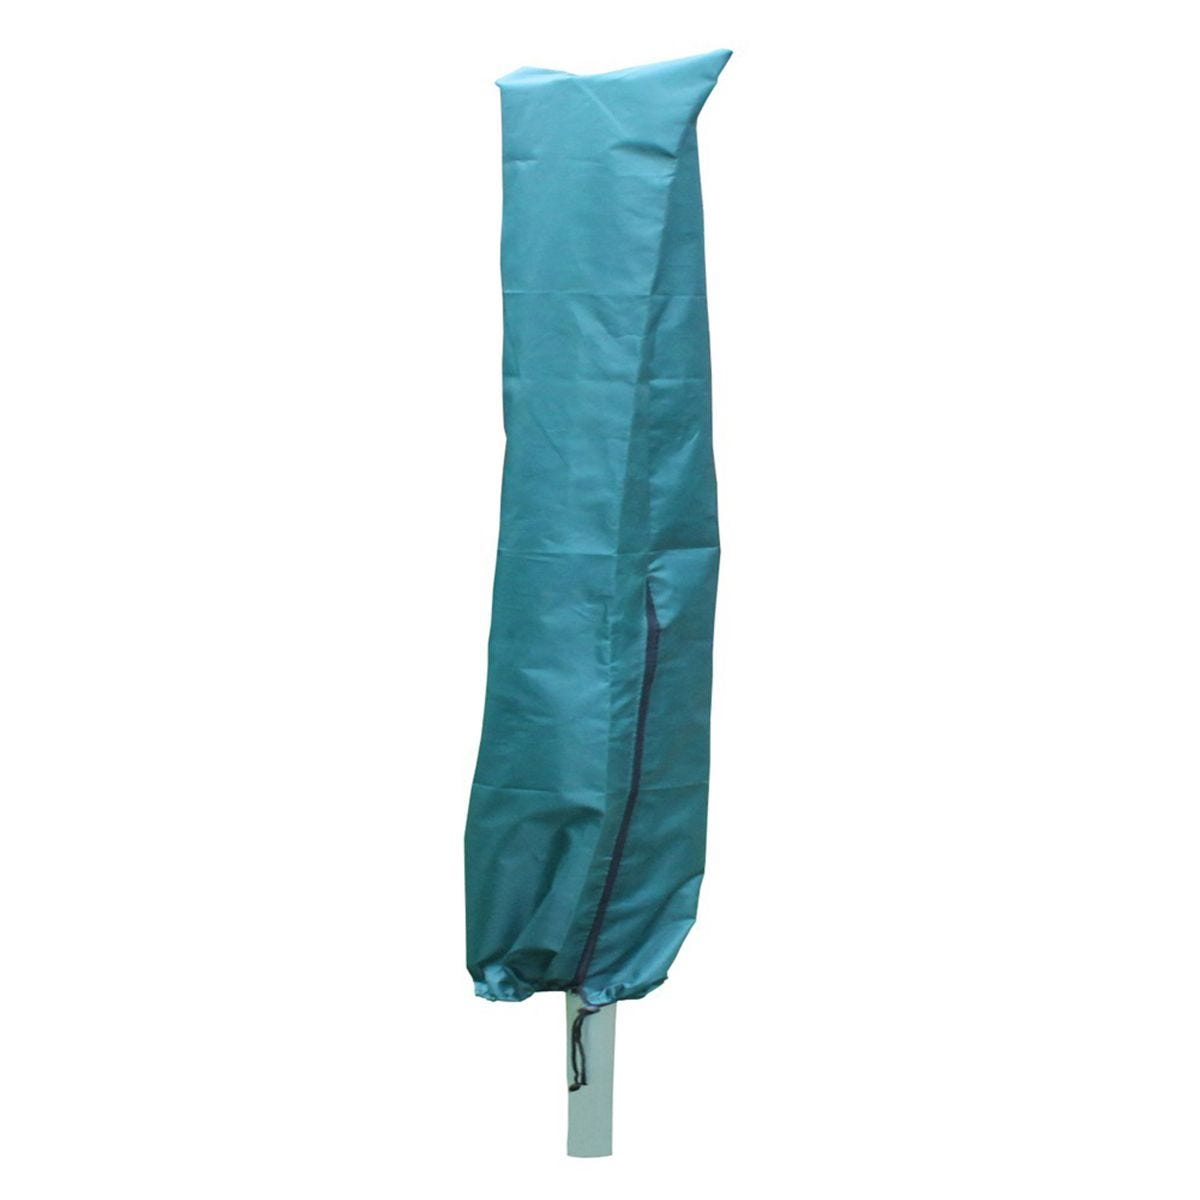 JVL Polyester Showerproof Universal Fit Zipped Rotary Airer Cover - Green